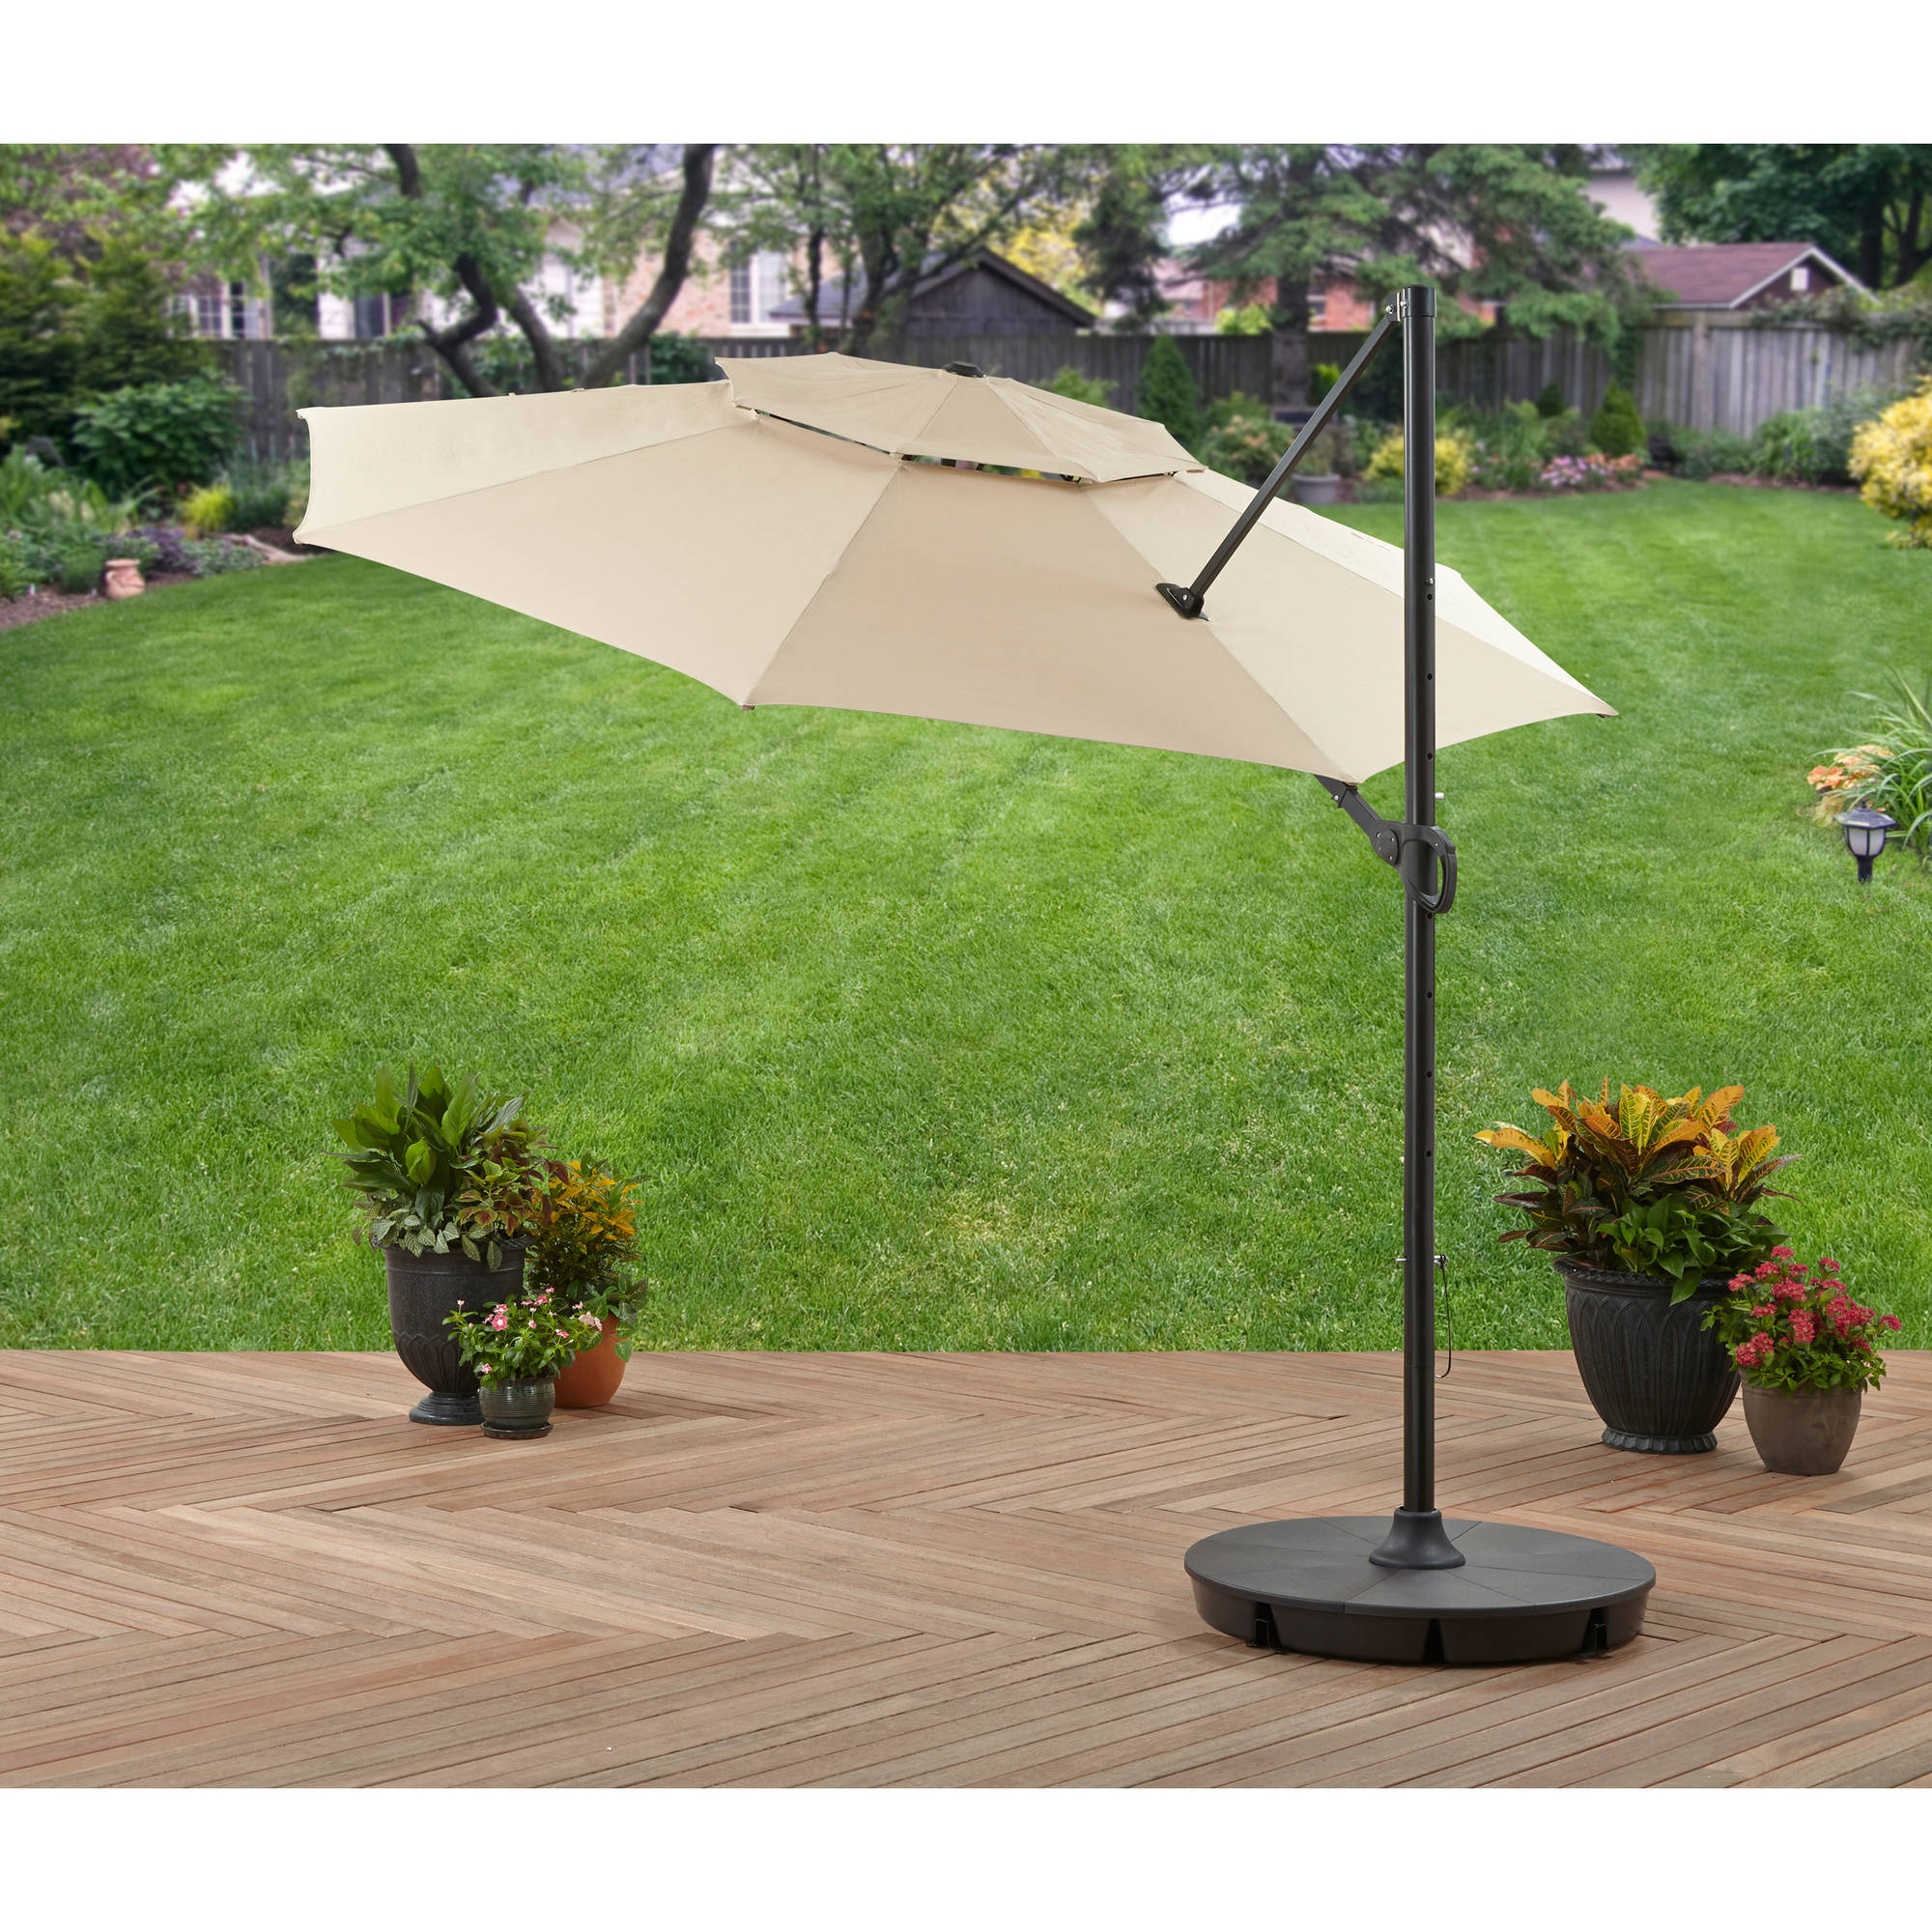 Better Homes and Gardens 11' Offset Umbrella with Base, Tan